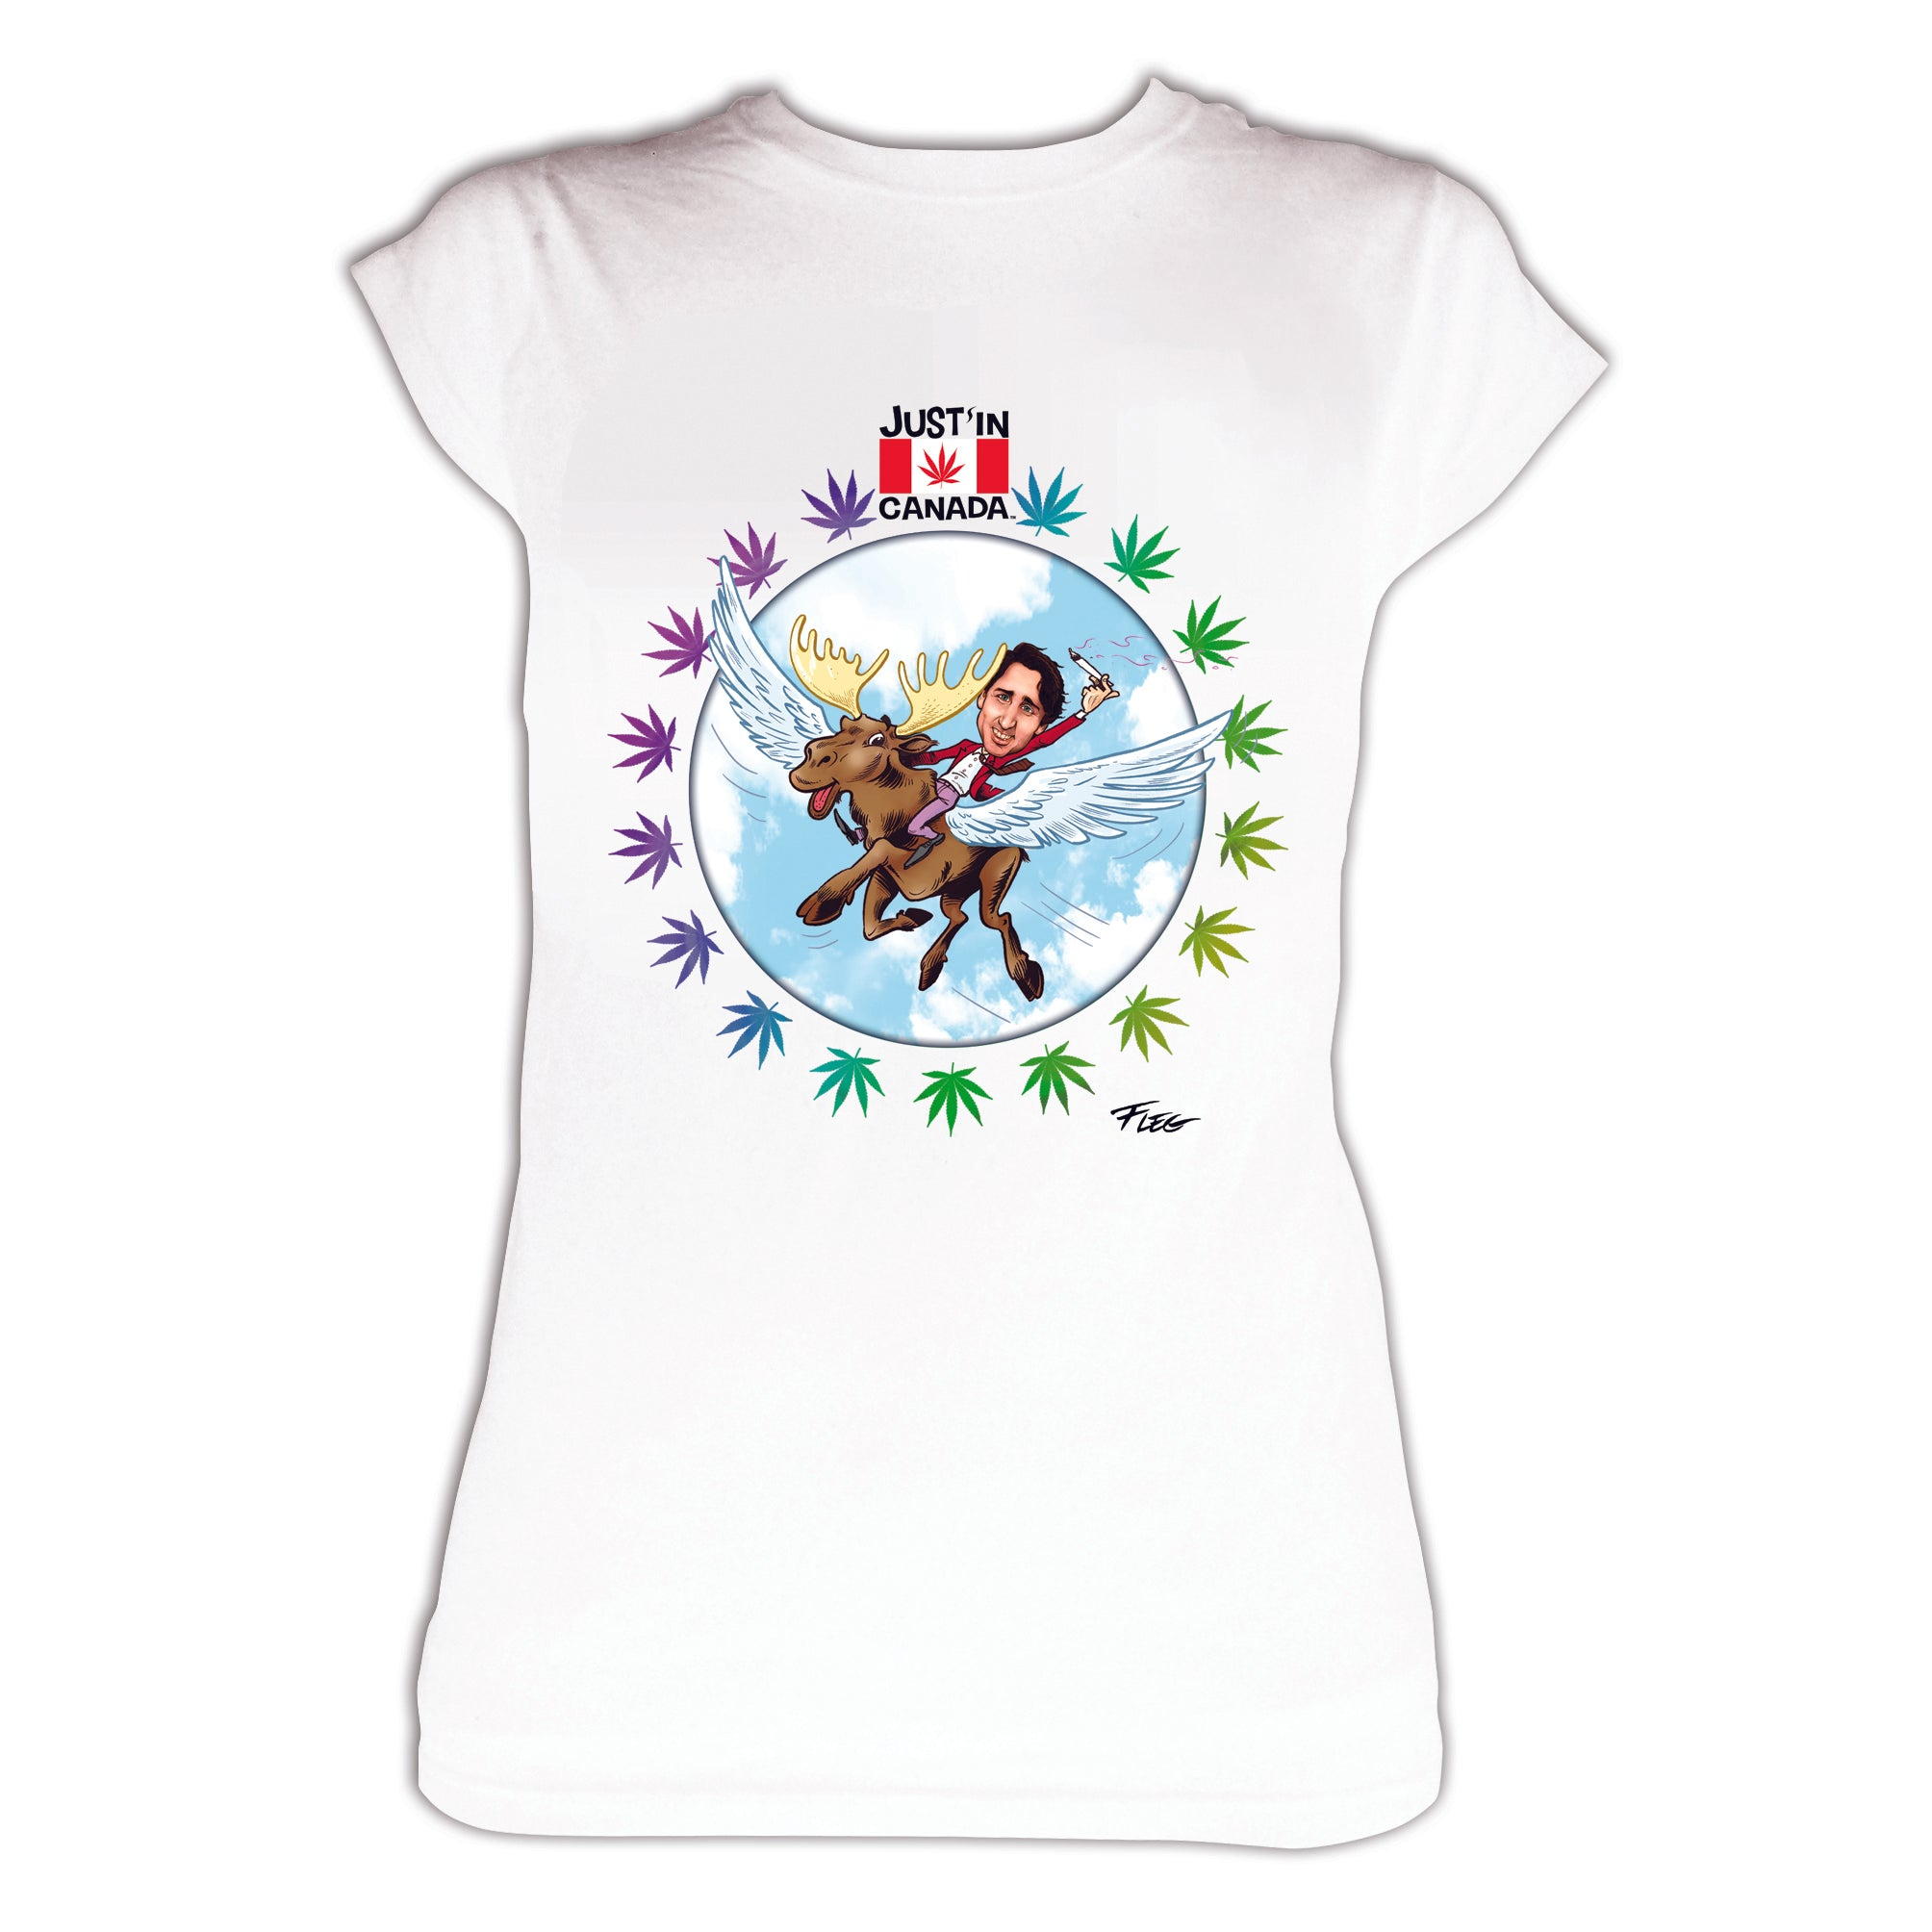 Justin Trudeau flying high on a moose womens T‑shirt